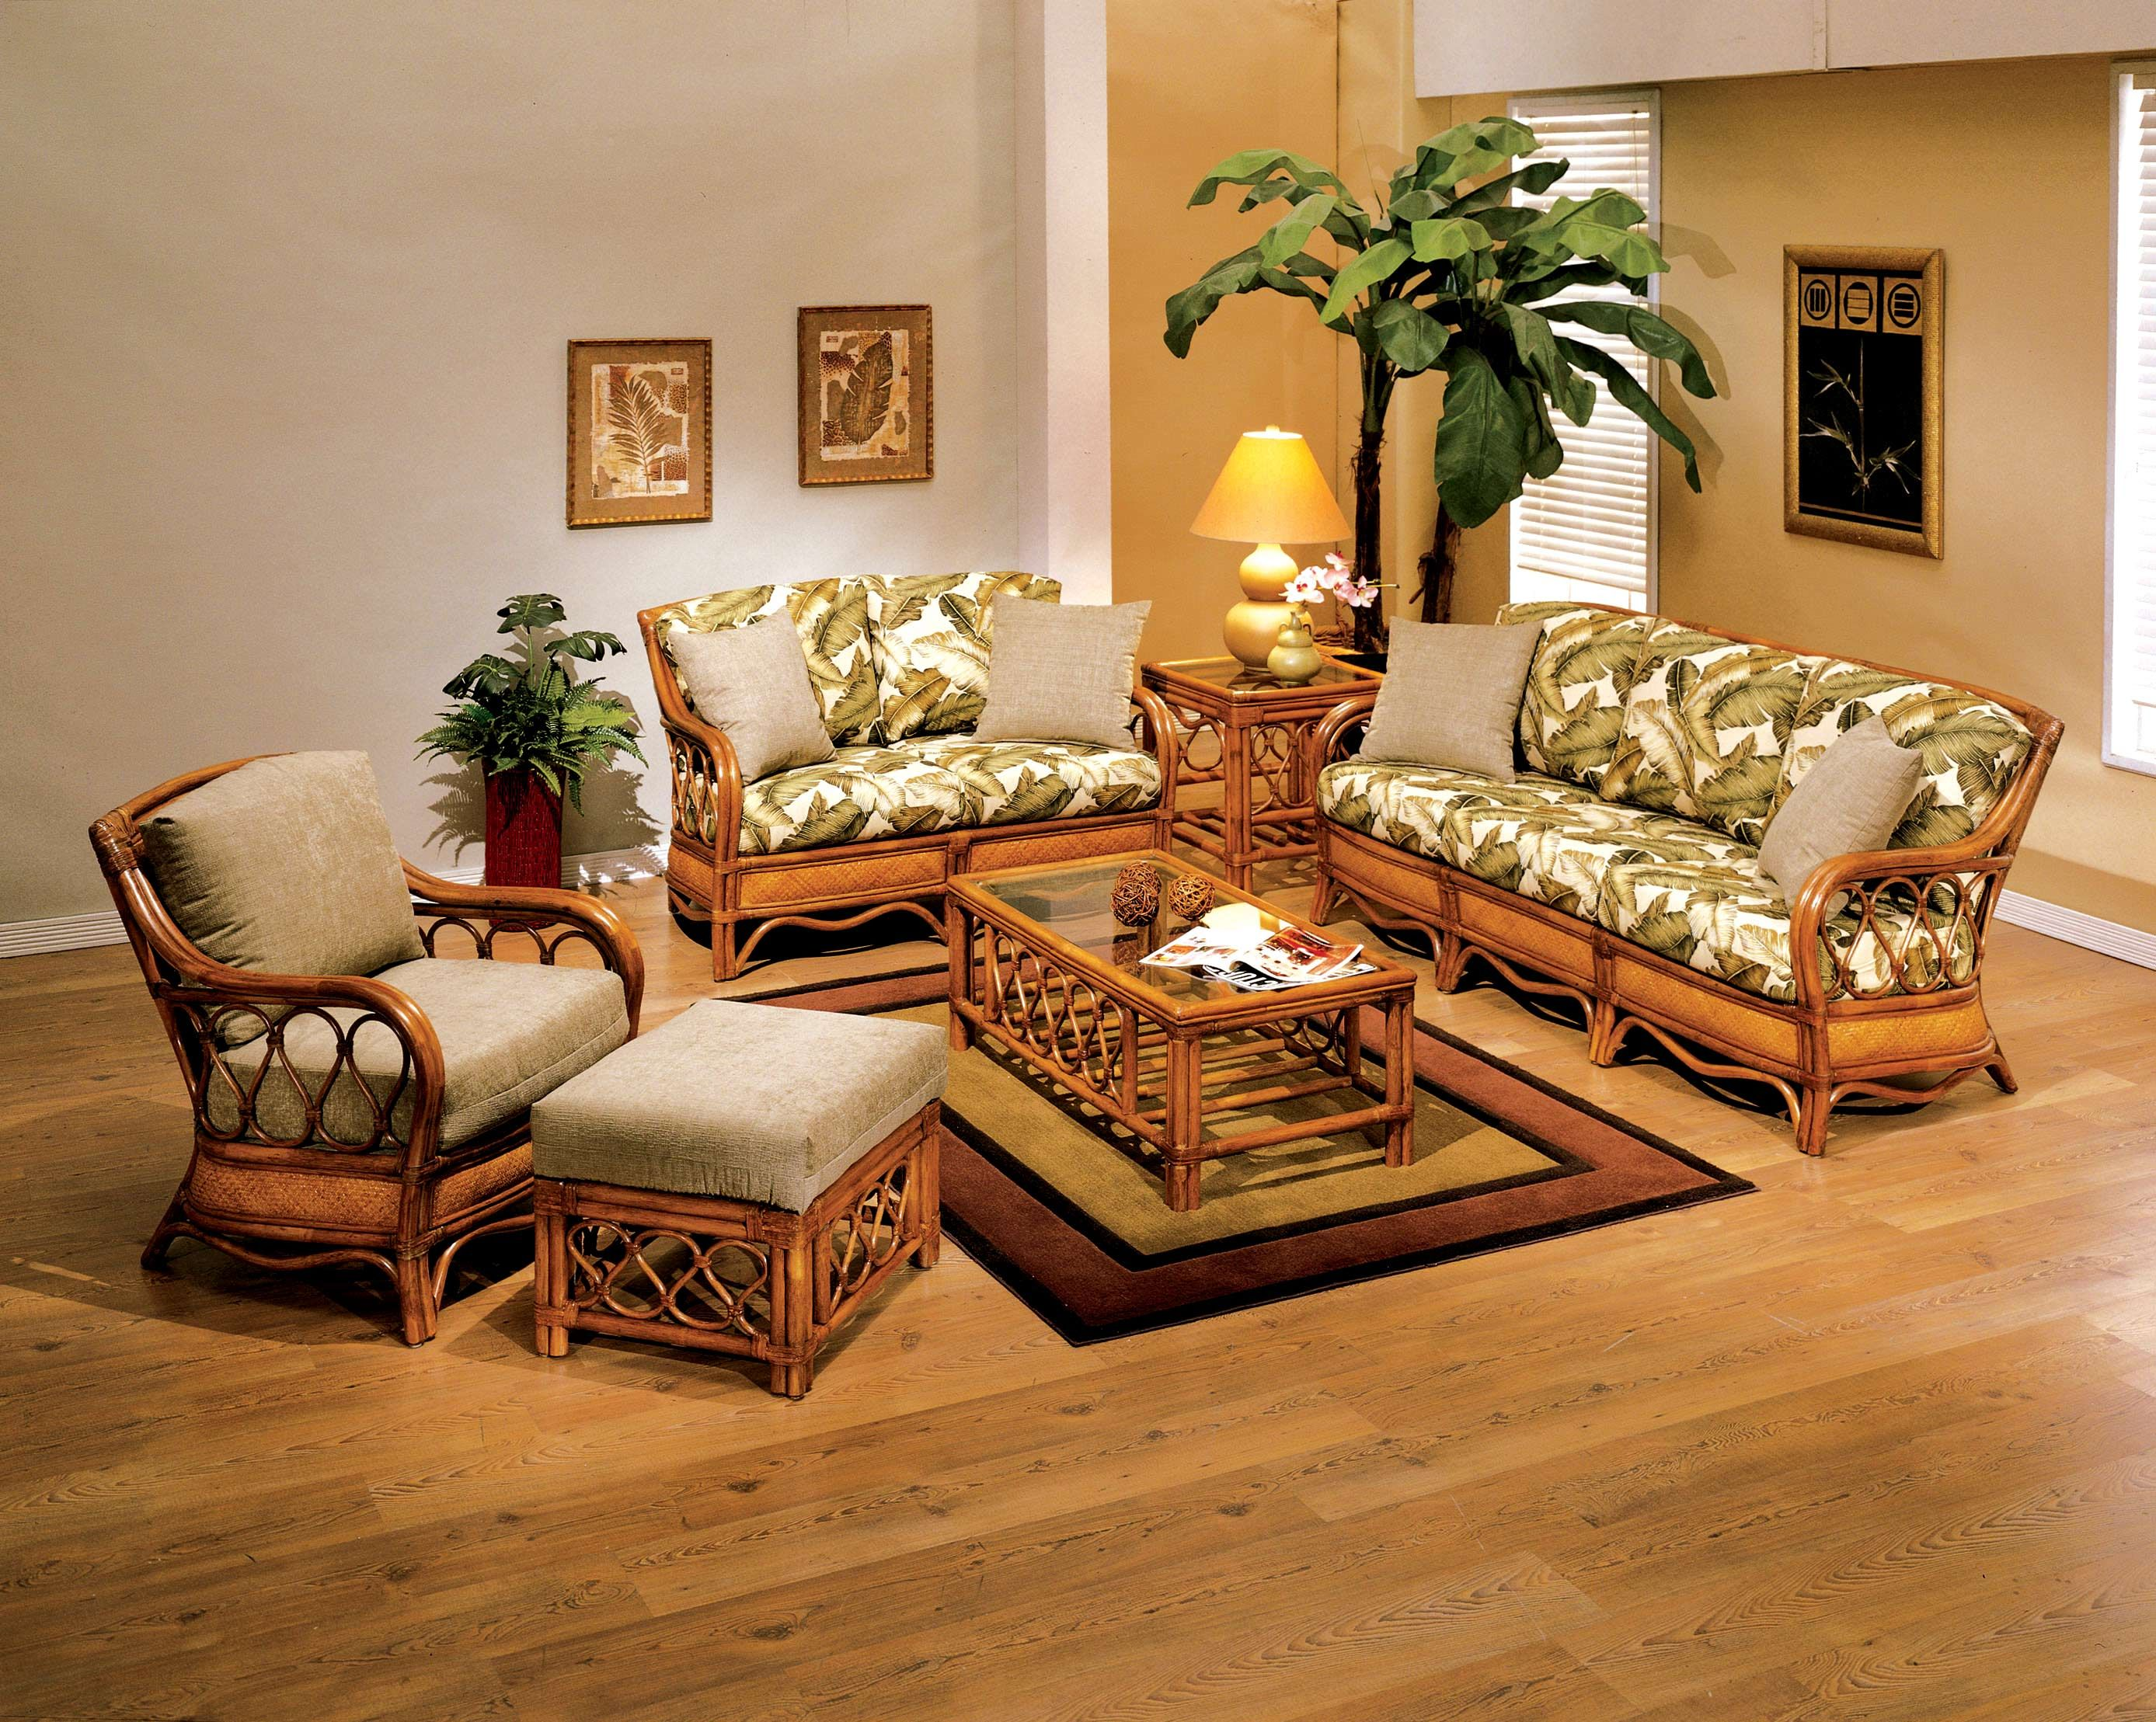 Wicker Rattan Living Room Furniture. rattan  wicker bamboo chairs Rattan Living Room Furniture Gallery 1